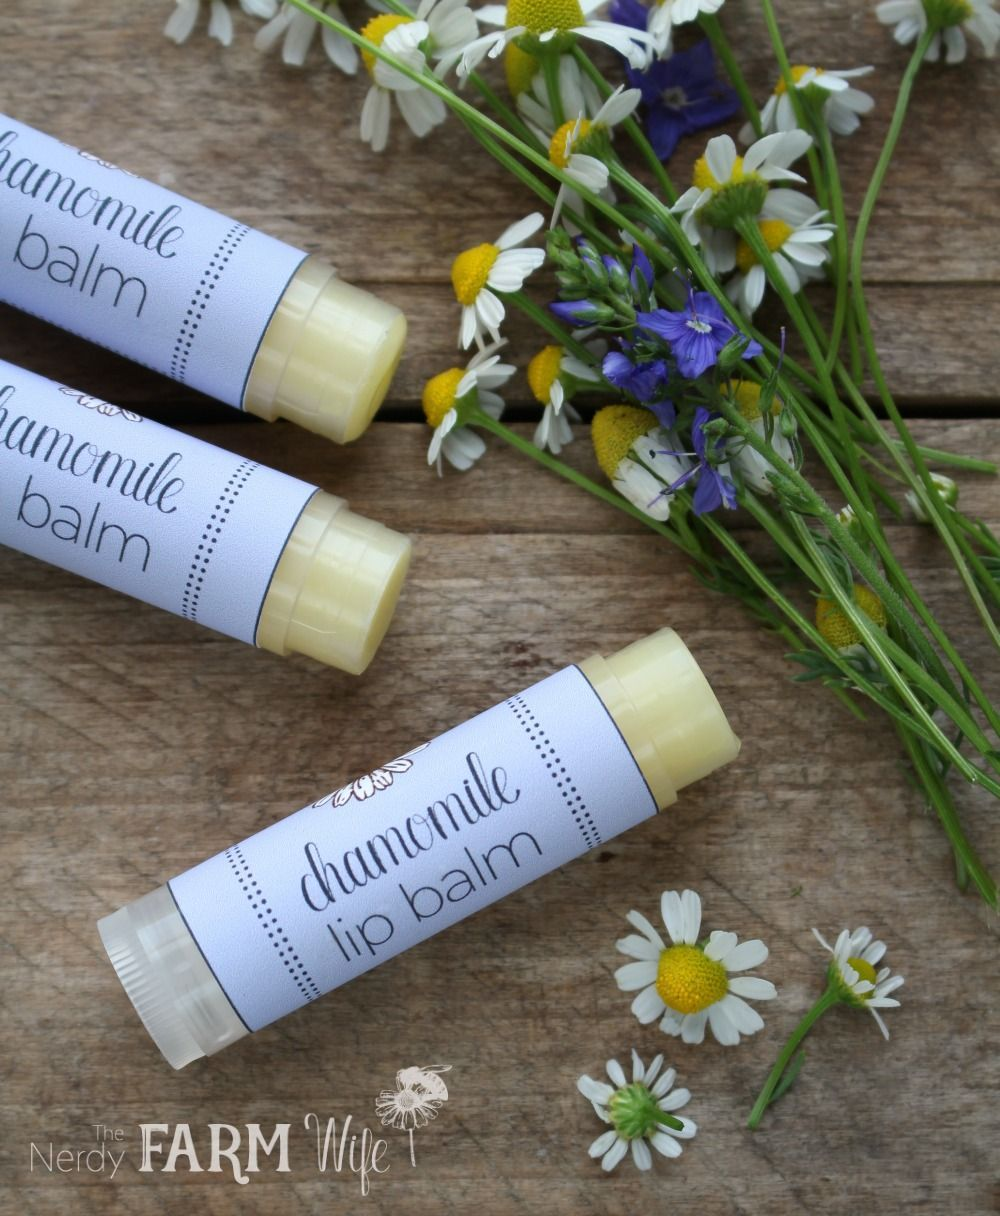 This easy DIY lip balm recipe features dried chamomile flowers for